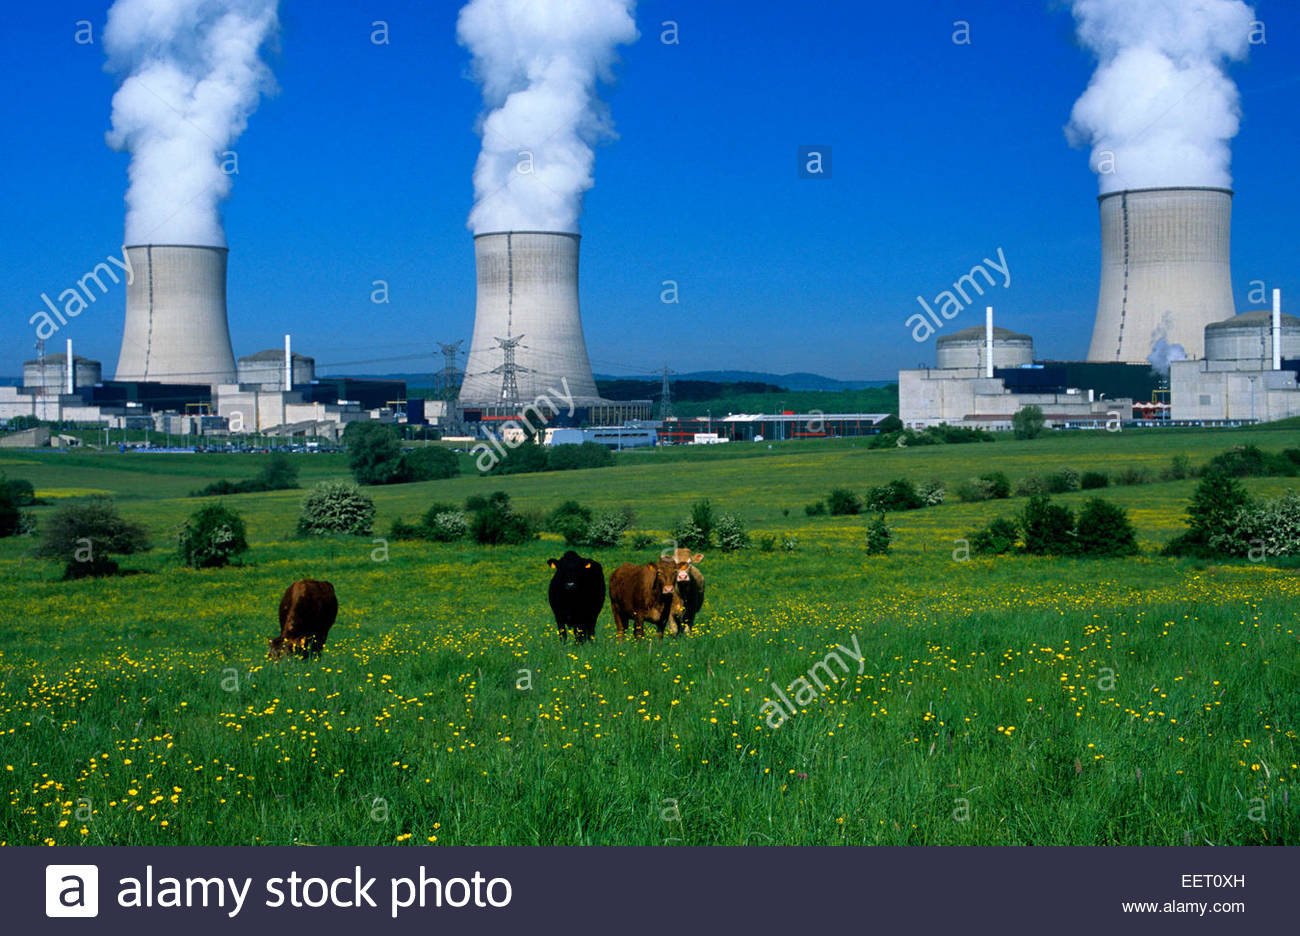 Cattenom nuclear thermal power station, Moselle, France. - Stock Image